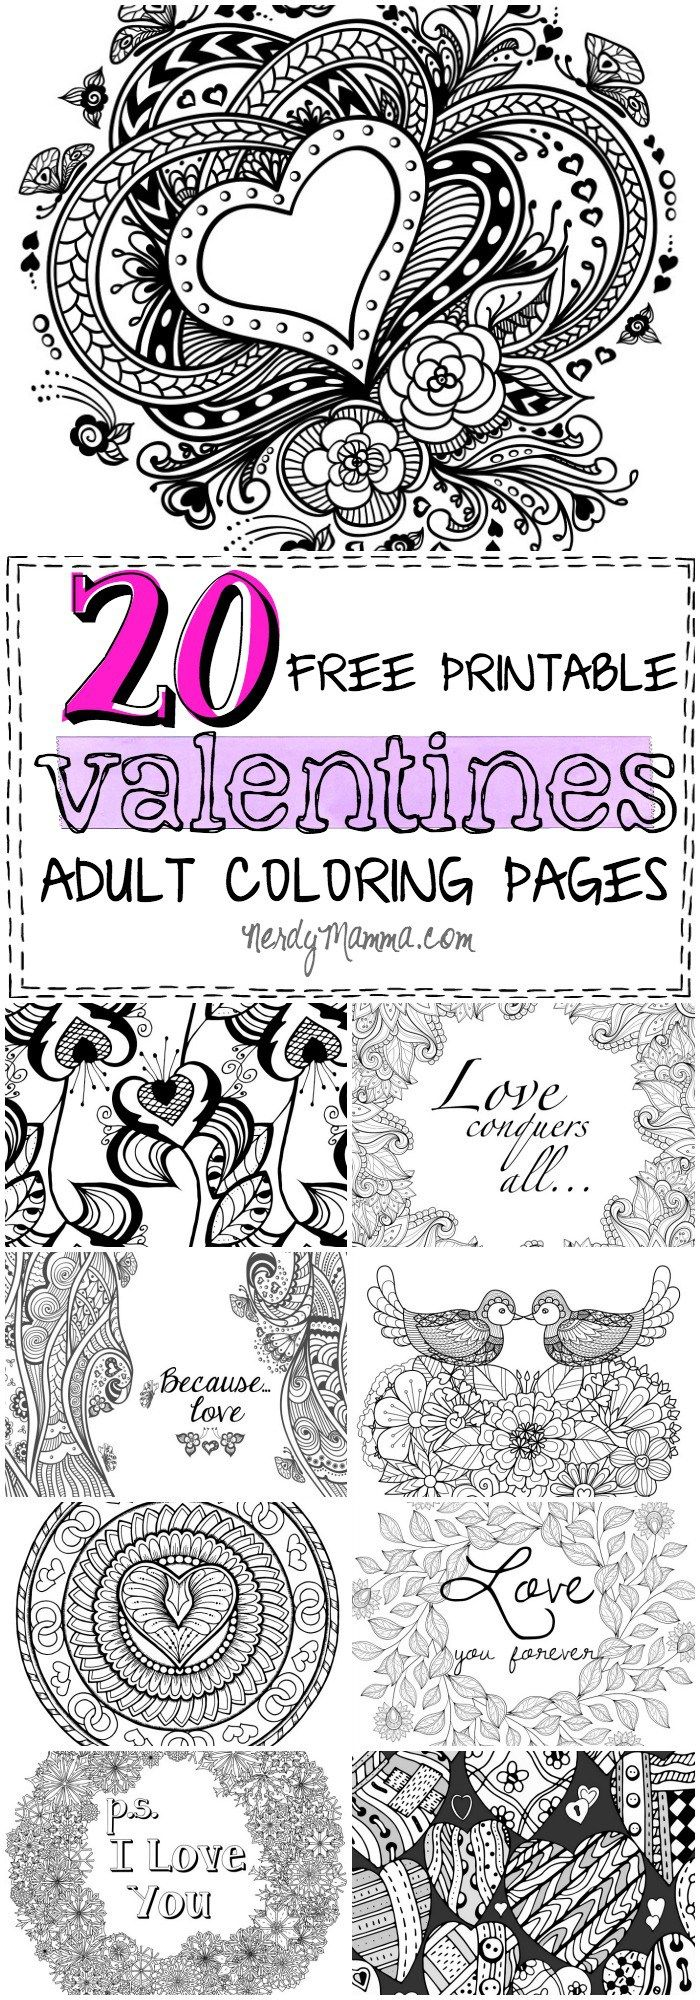 Free printable coloring pages get well soon - 20 Free Printable Valentines Adult Coloring Pages